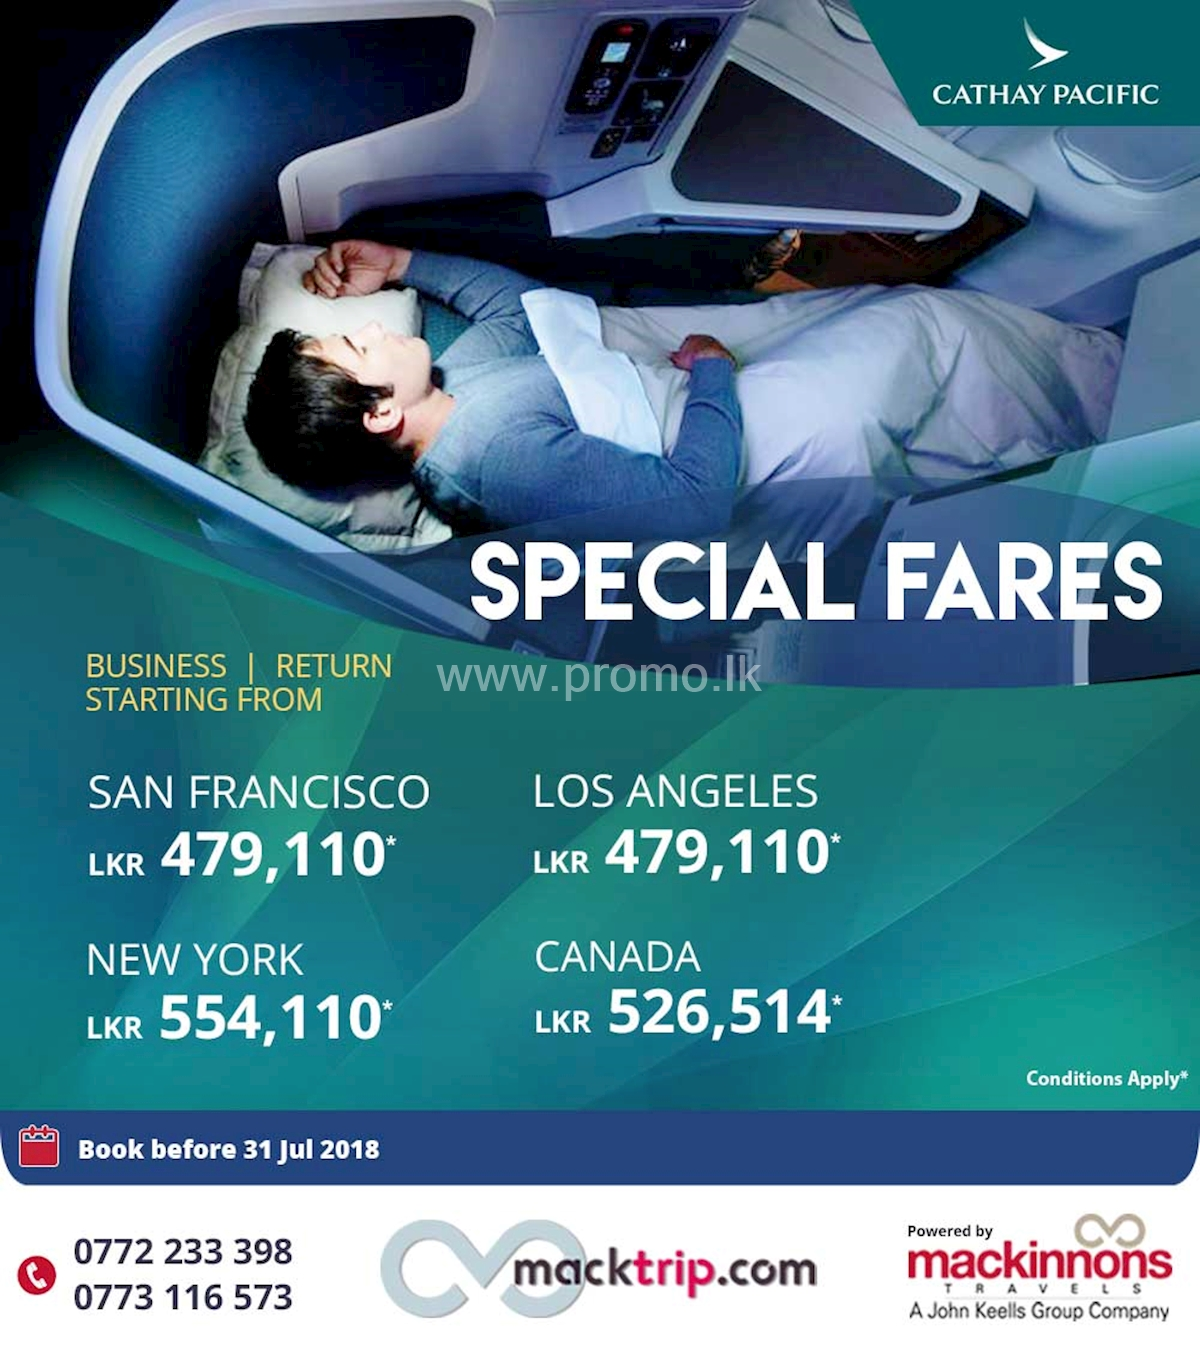 Special Fares on Cathay Pacific from Mackinnons Travel